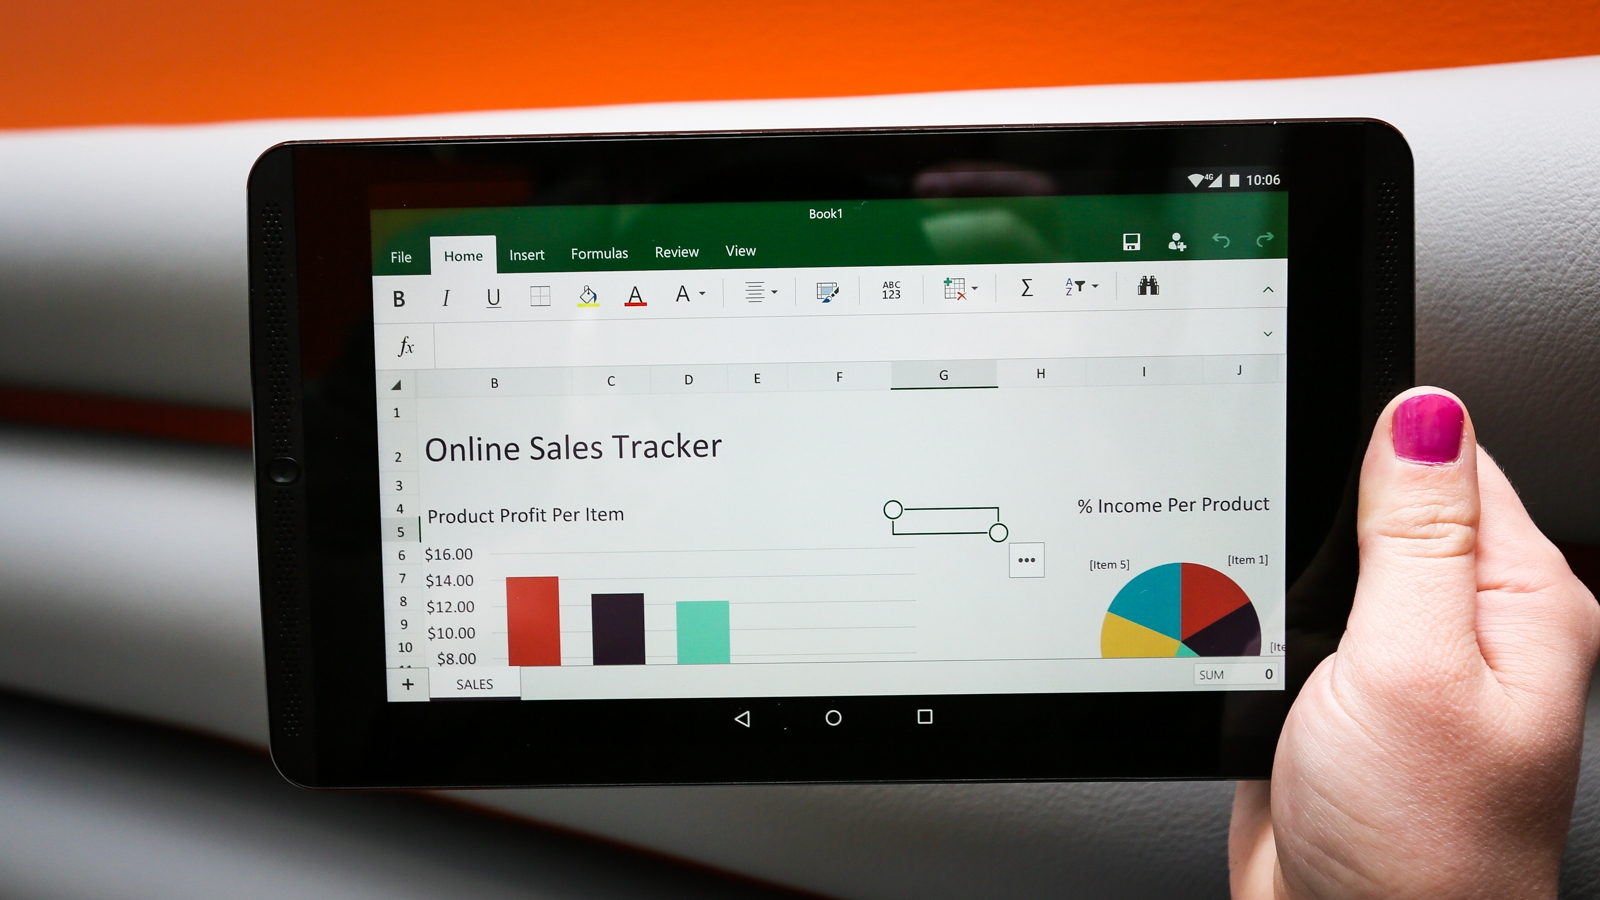 <p>Microsoft finally brings Office to Android with new Word, Excel and Powerpoint apps that are well-designed and packing plenty of features.</p>